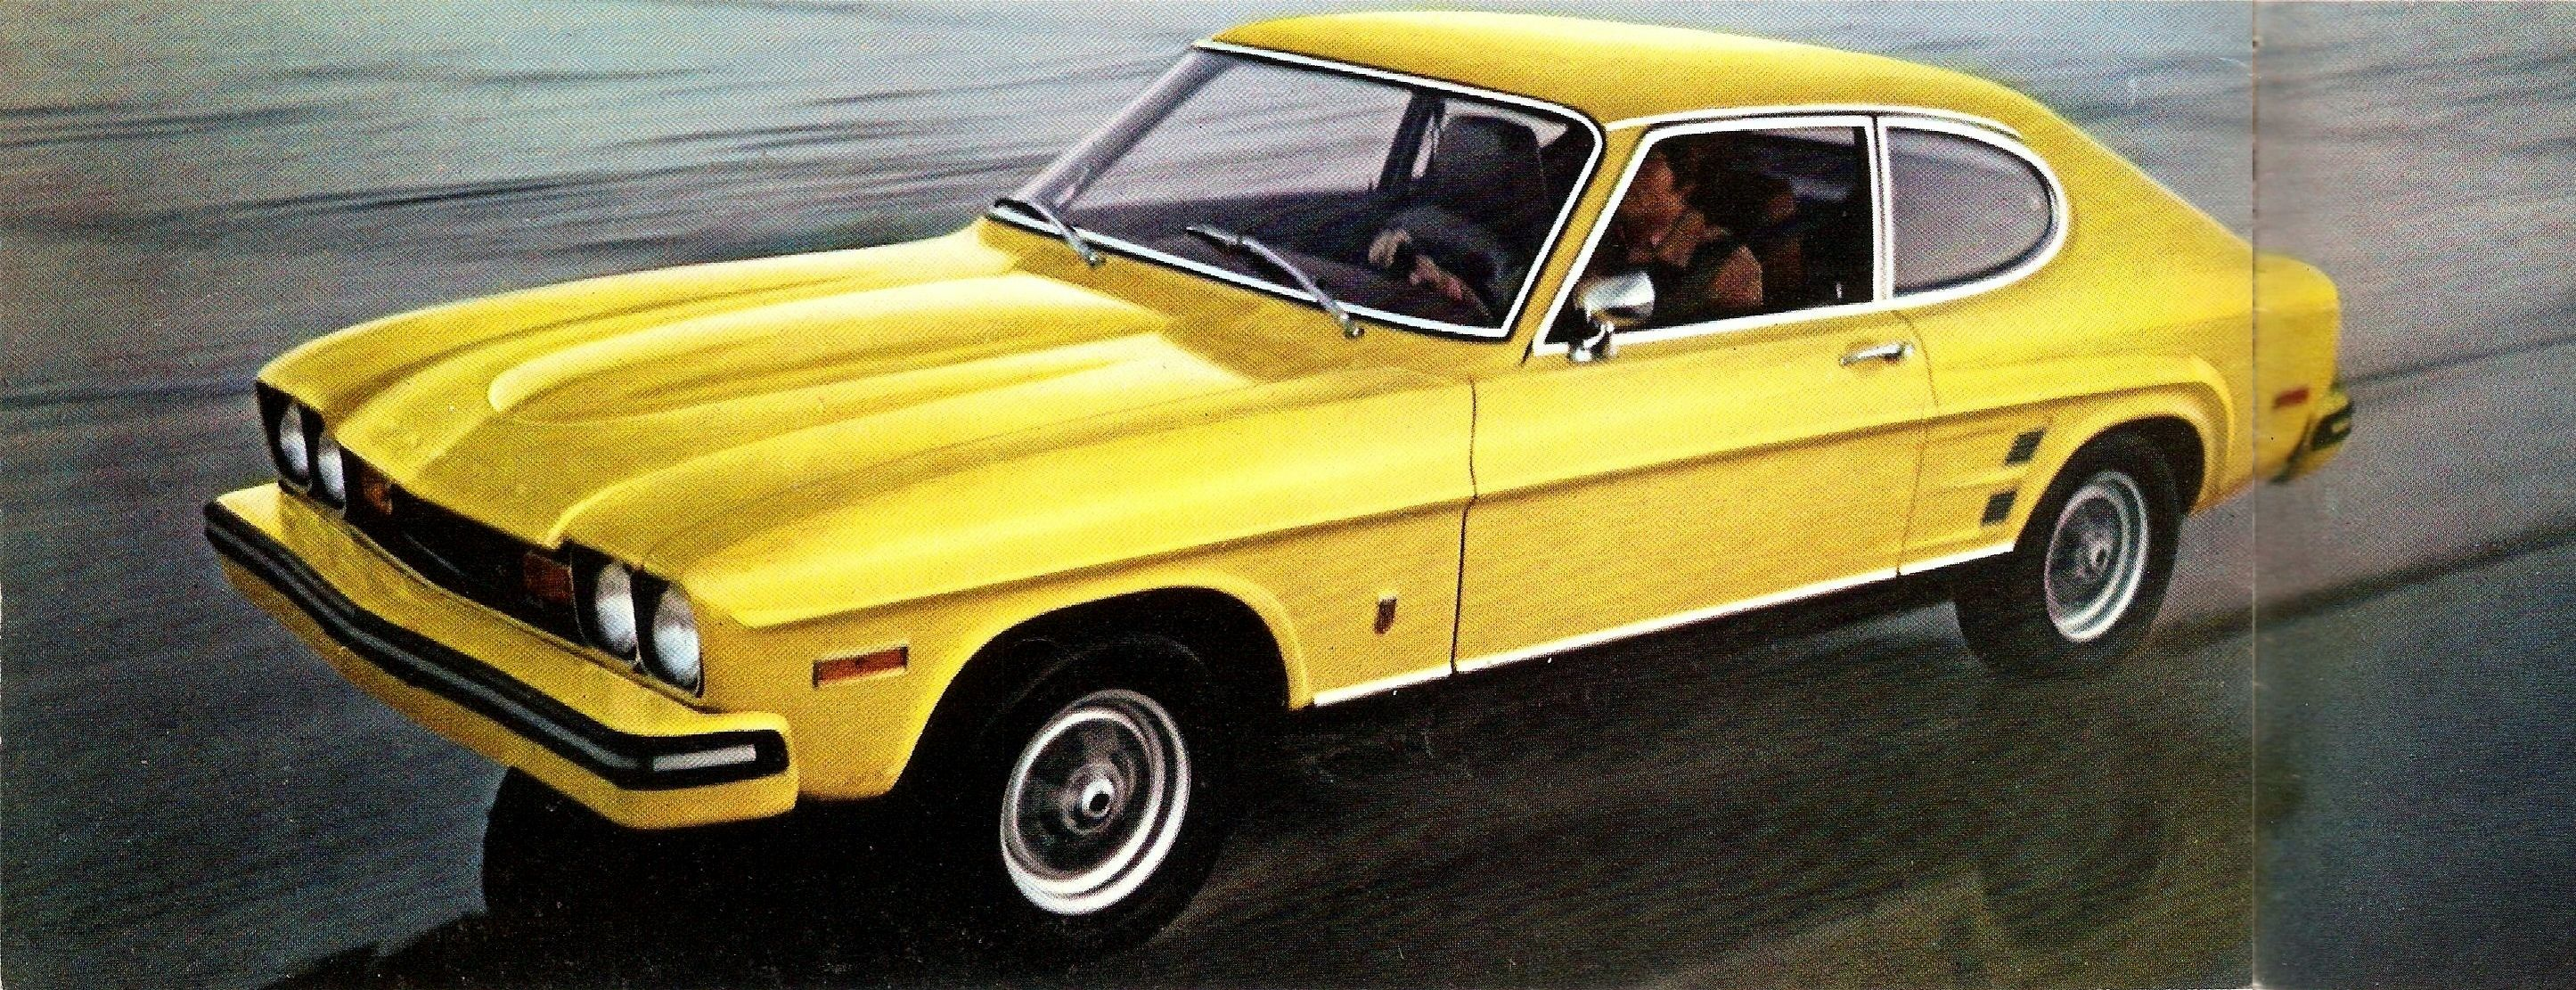 1973 Mercury Capri Get Yours Today At The Sign Of The Cat